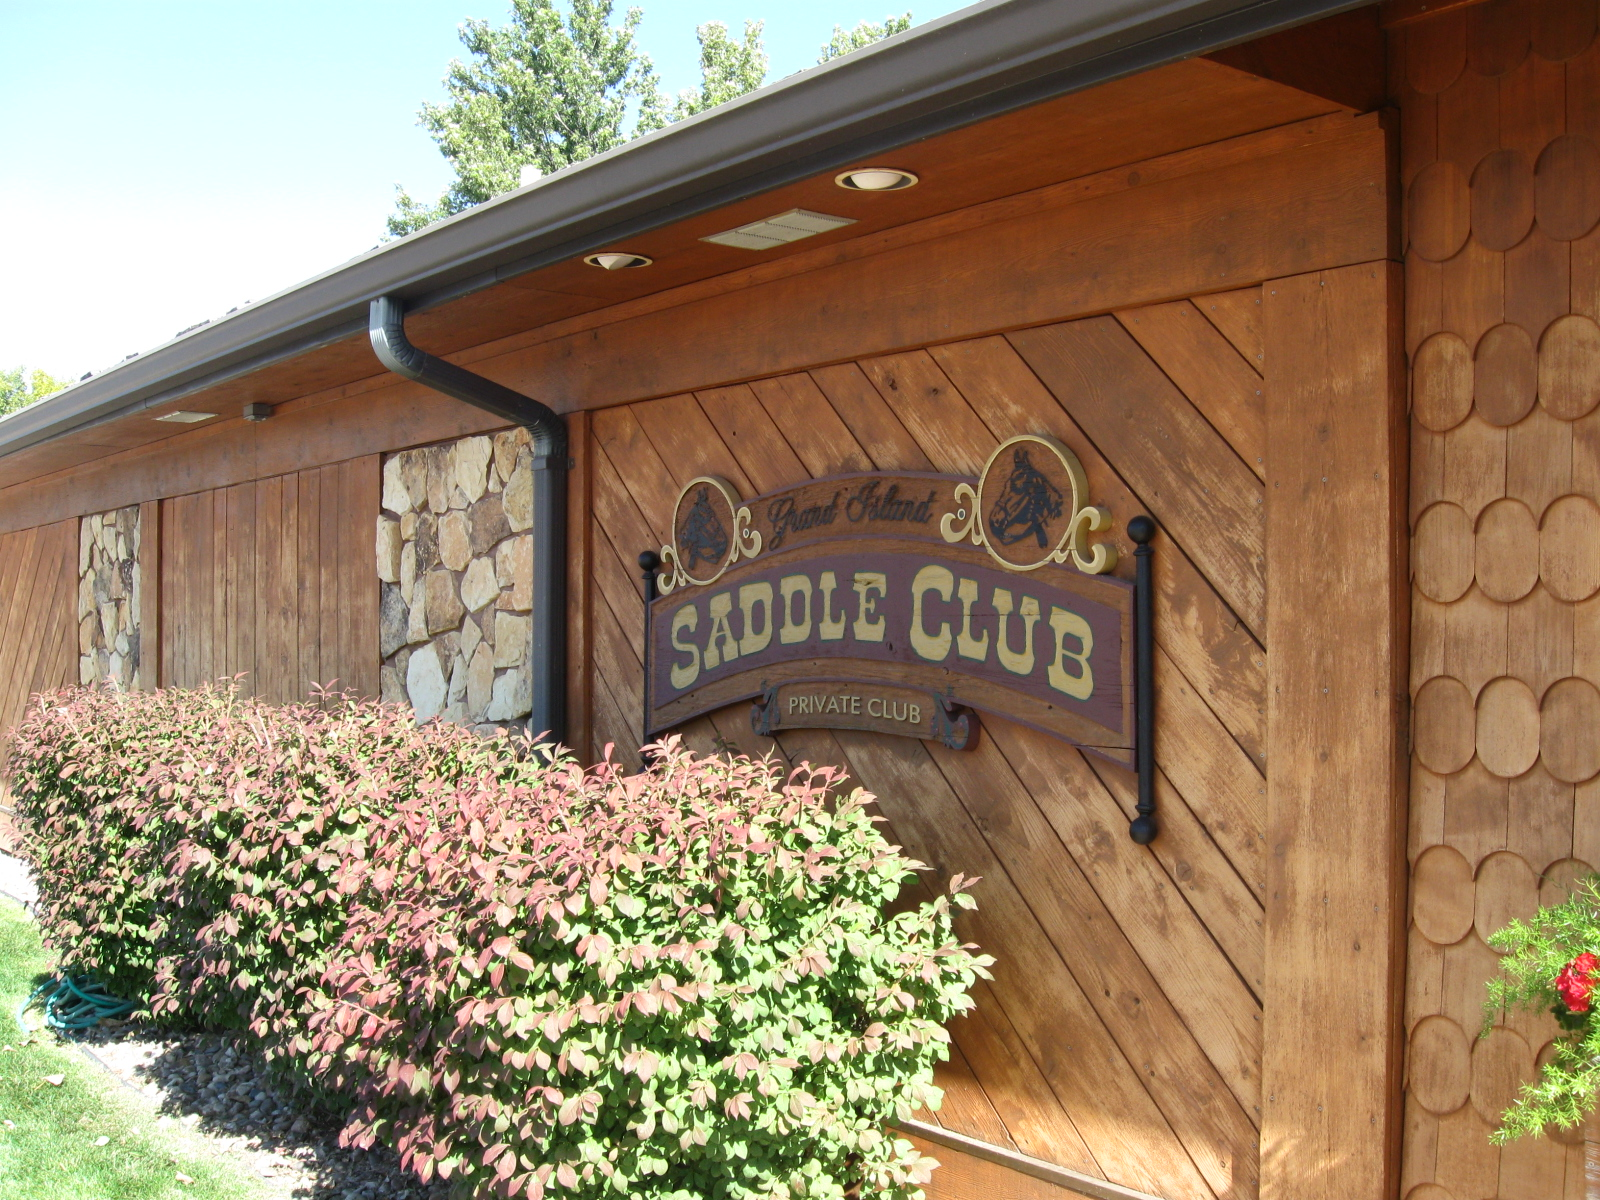 The Grand Island Saddle Club Was Organized In June Of 1945 By A Group Business People Brought Together Their Mutual Love For Horses And Need